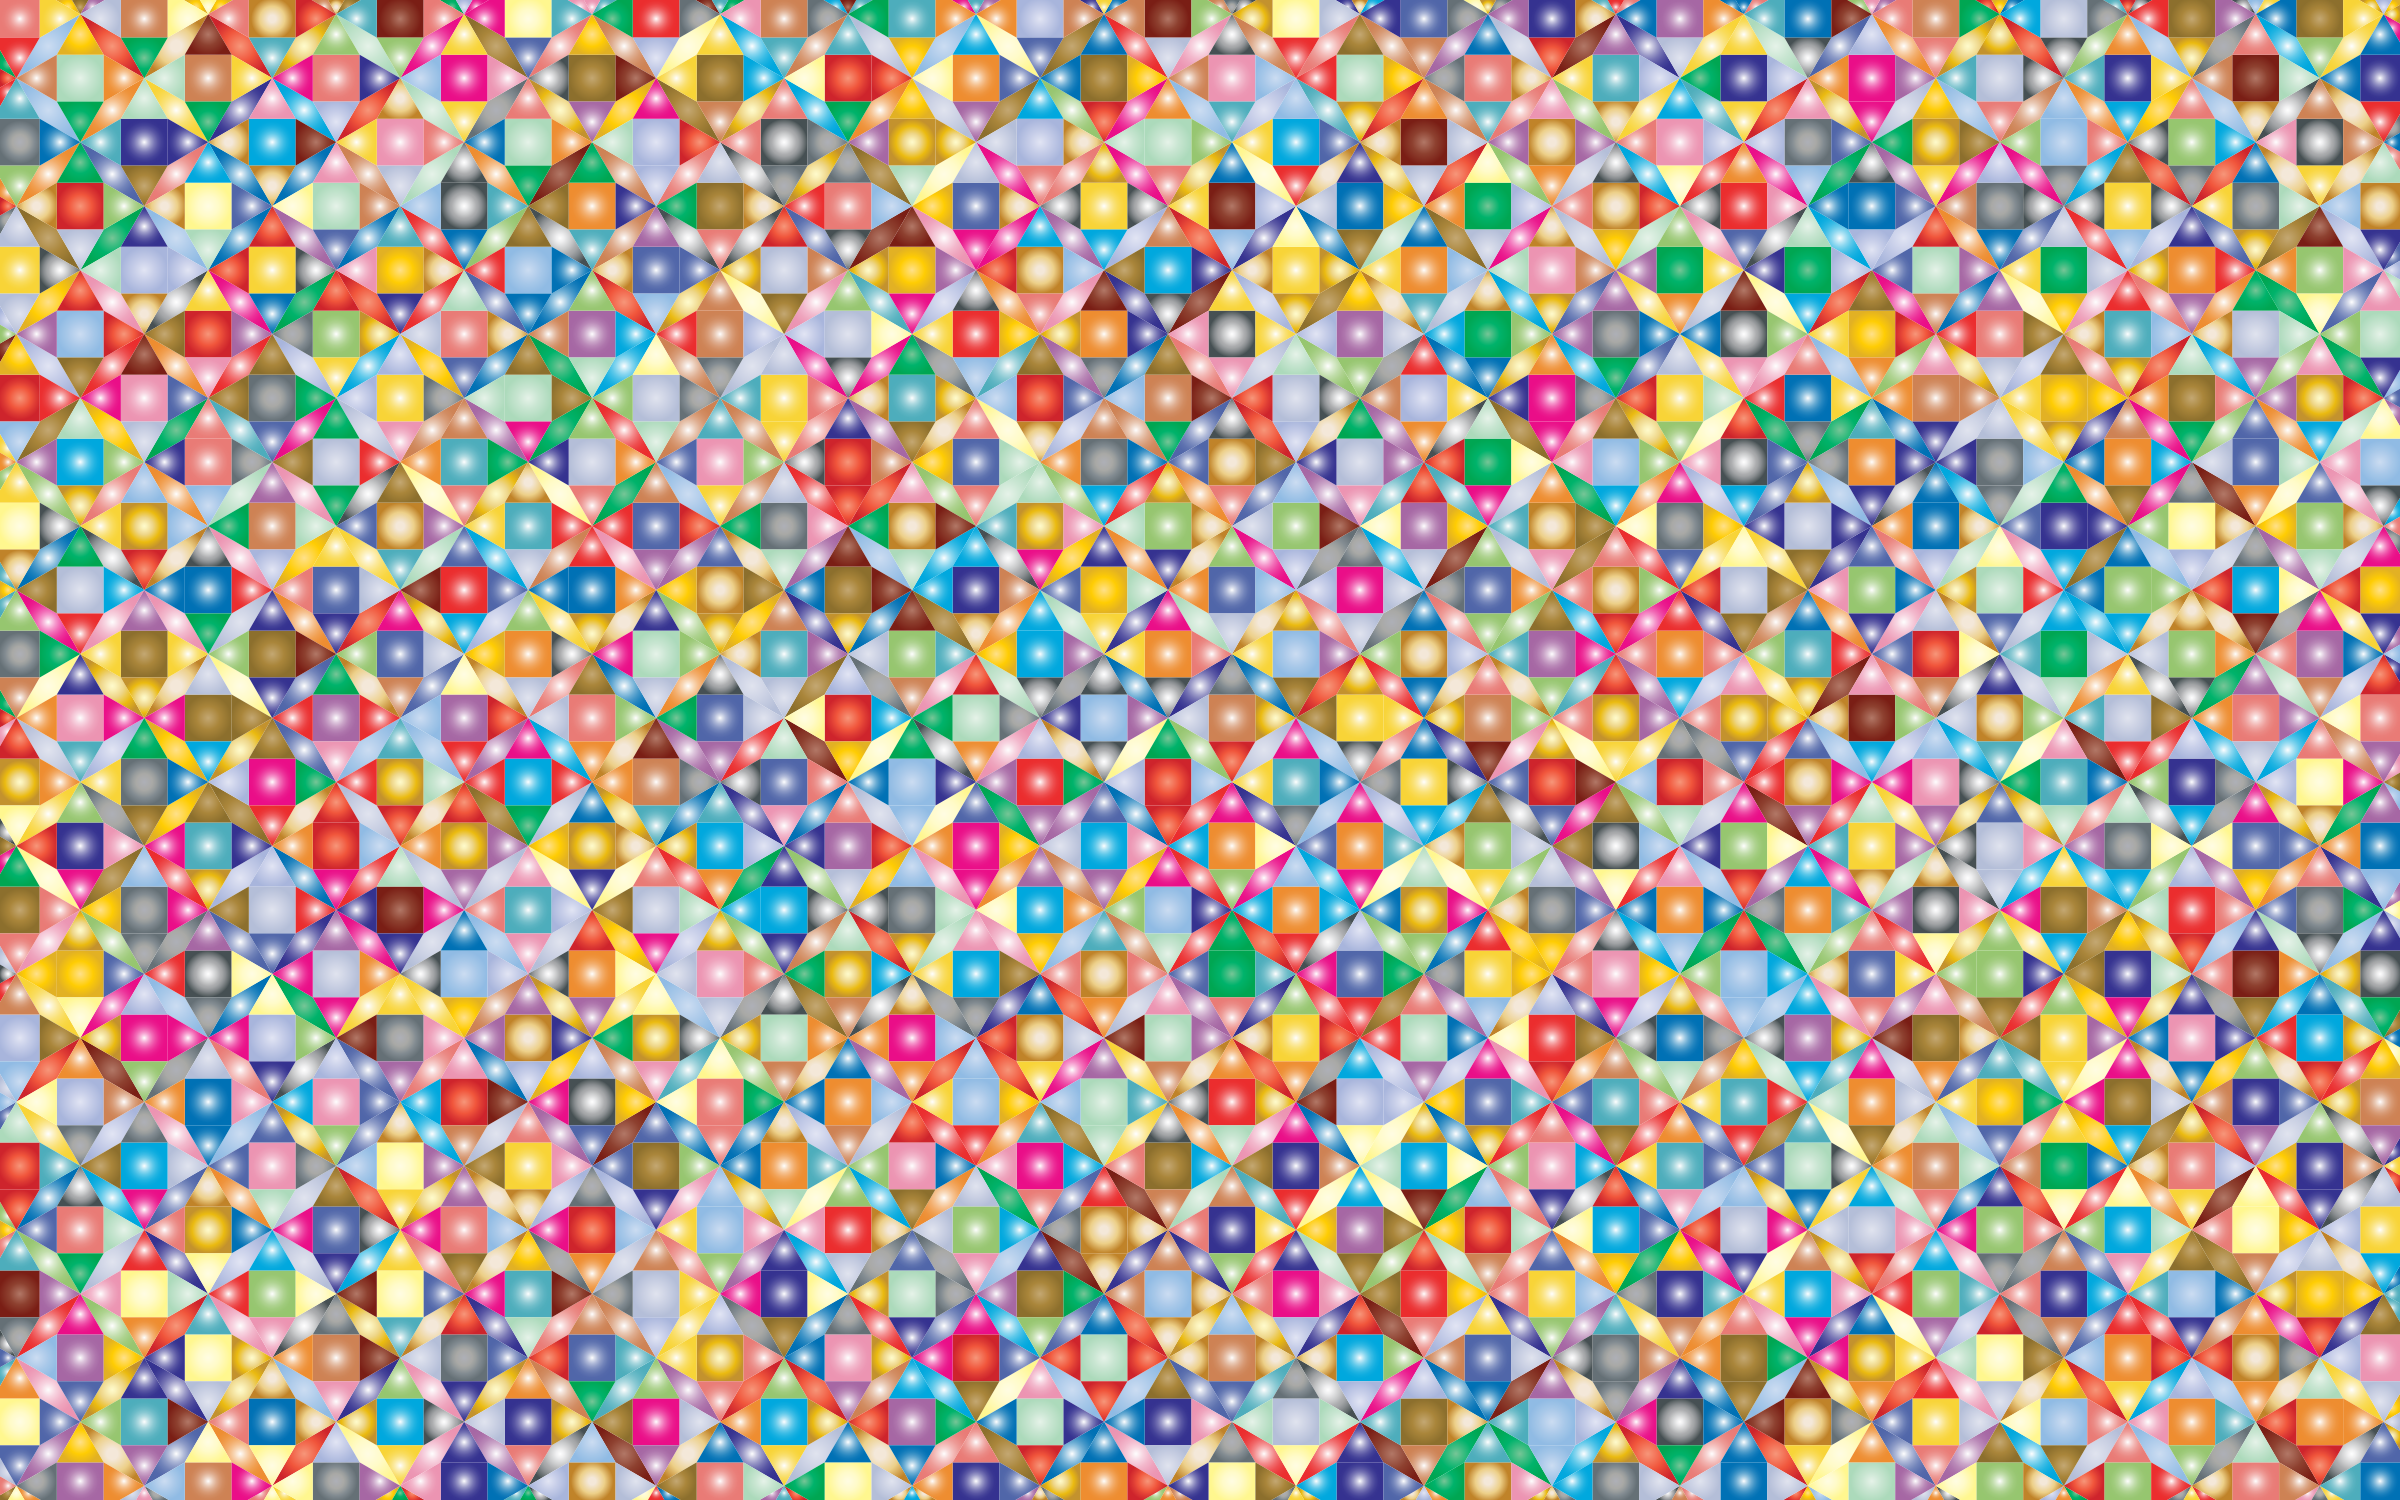 Prismatic Geometric Pattern 2 by GDJ